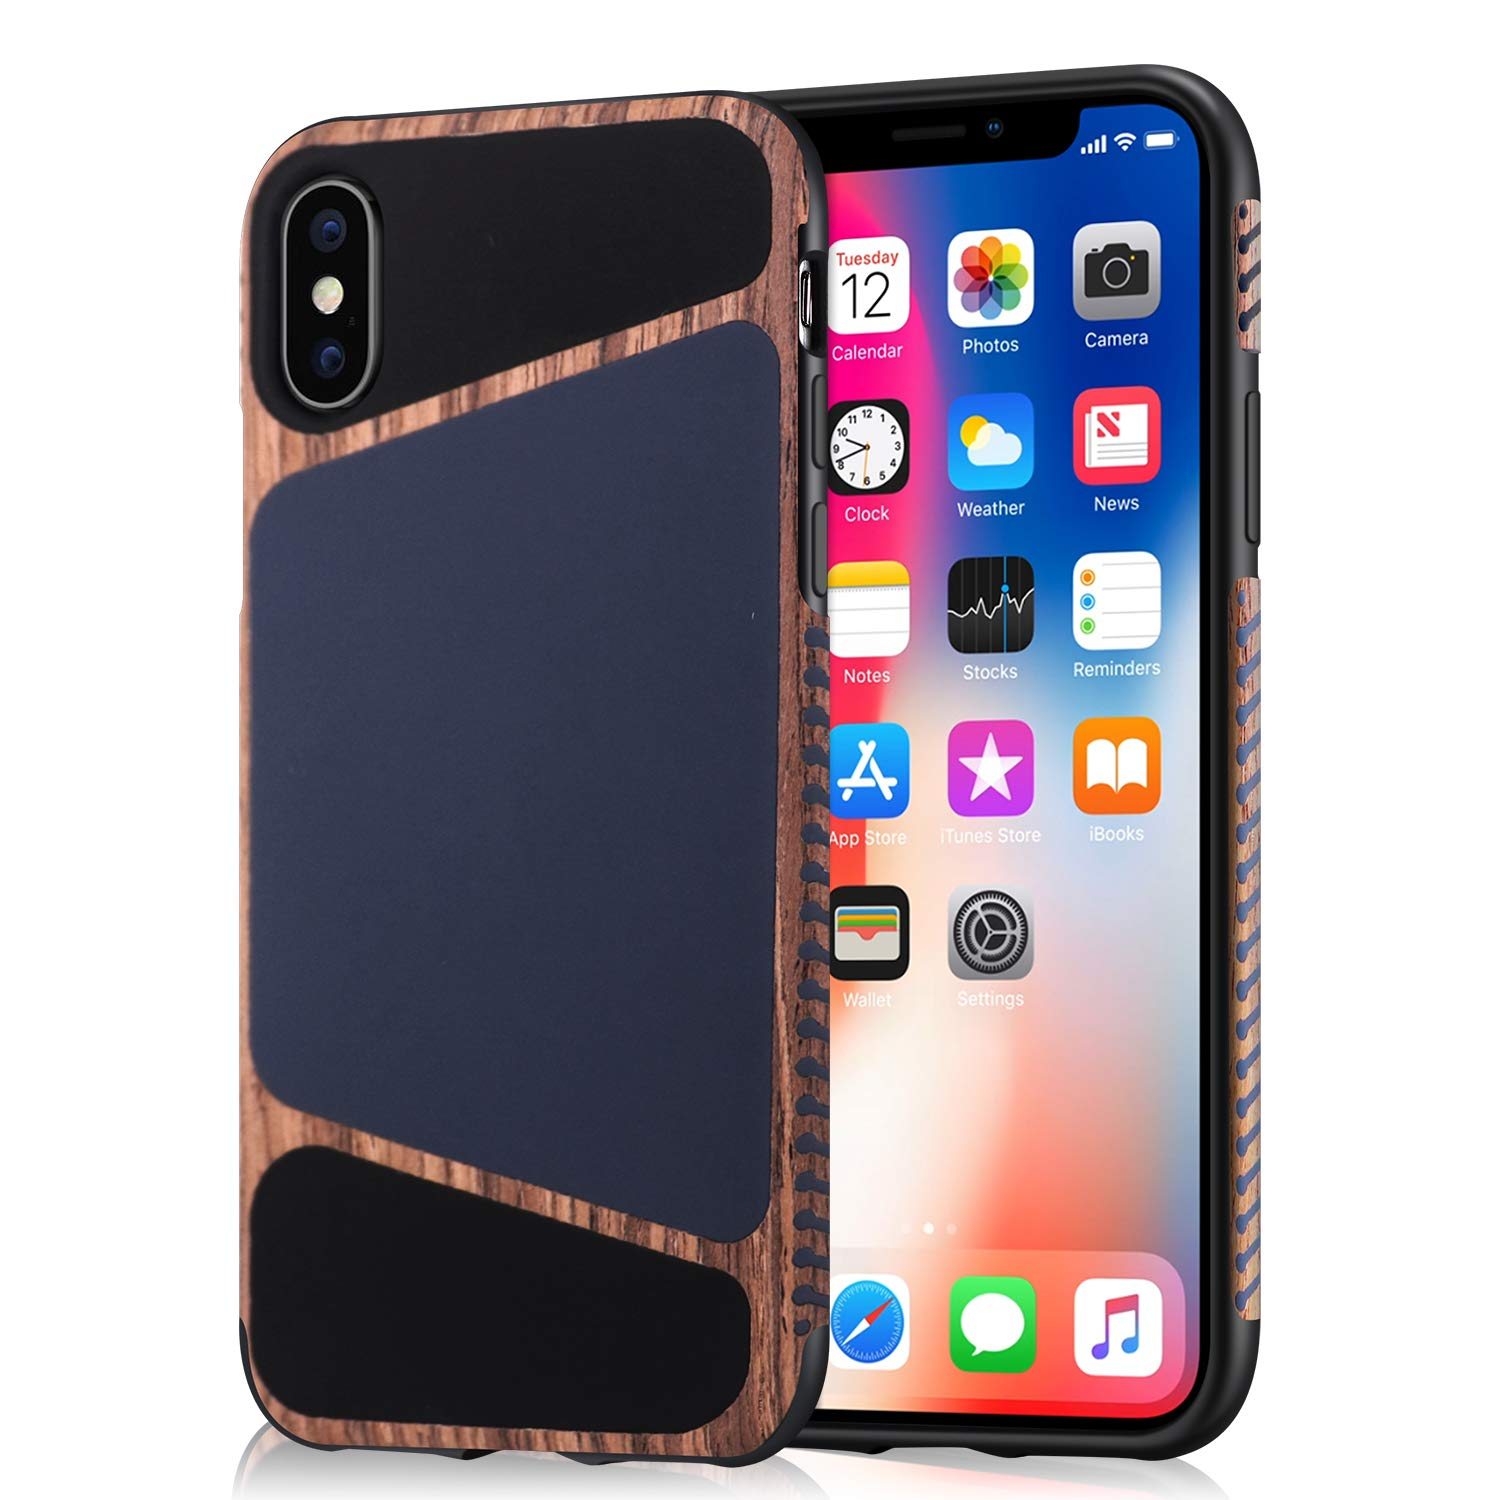 Mthinkor iPhone Xs Case, iPhone X Case Wood Grain Stitching Liquid Silicone Leather Case Compatible with iPhone X/iPhone Xs (Blue)